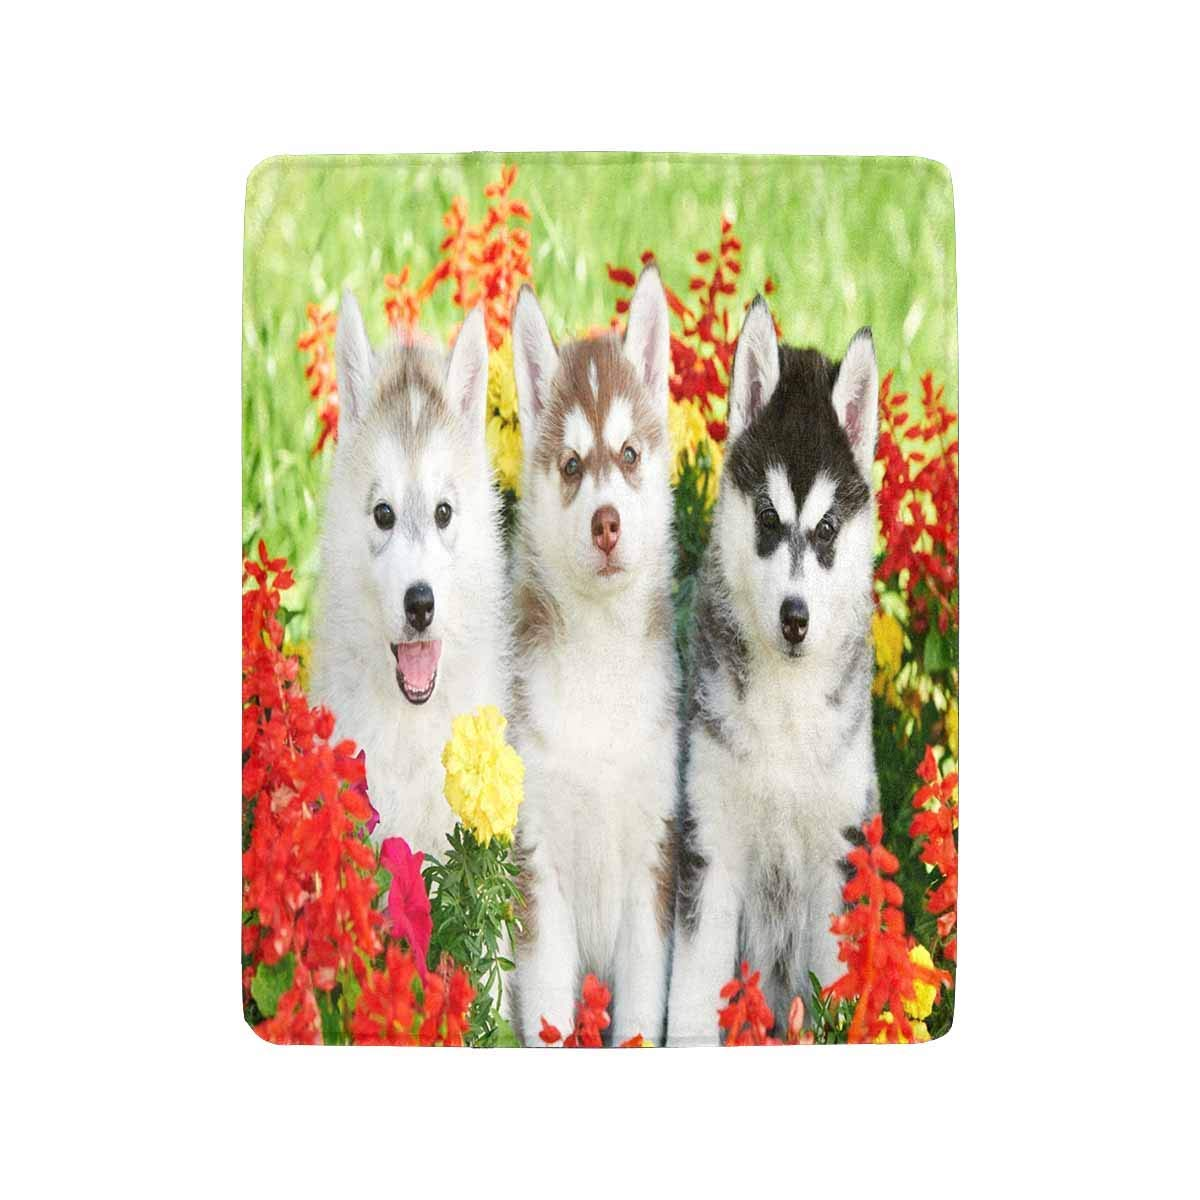 Mesllings Siberian Husky Puppy Dogs One Month Old on Green Grass Lightweight Cozy Bed Blanket fit Couch Sofa Suitable for All Season 40 x 50 Inches